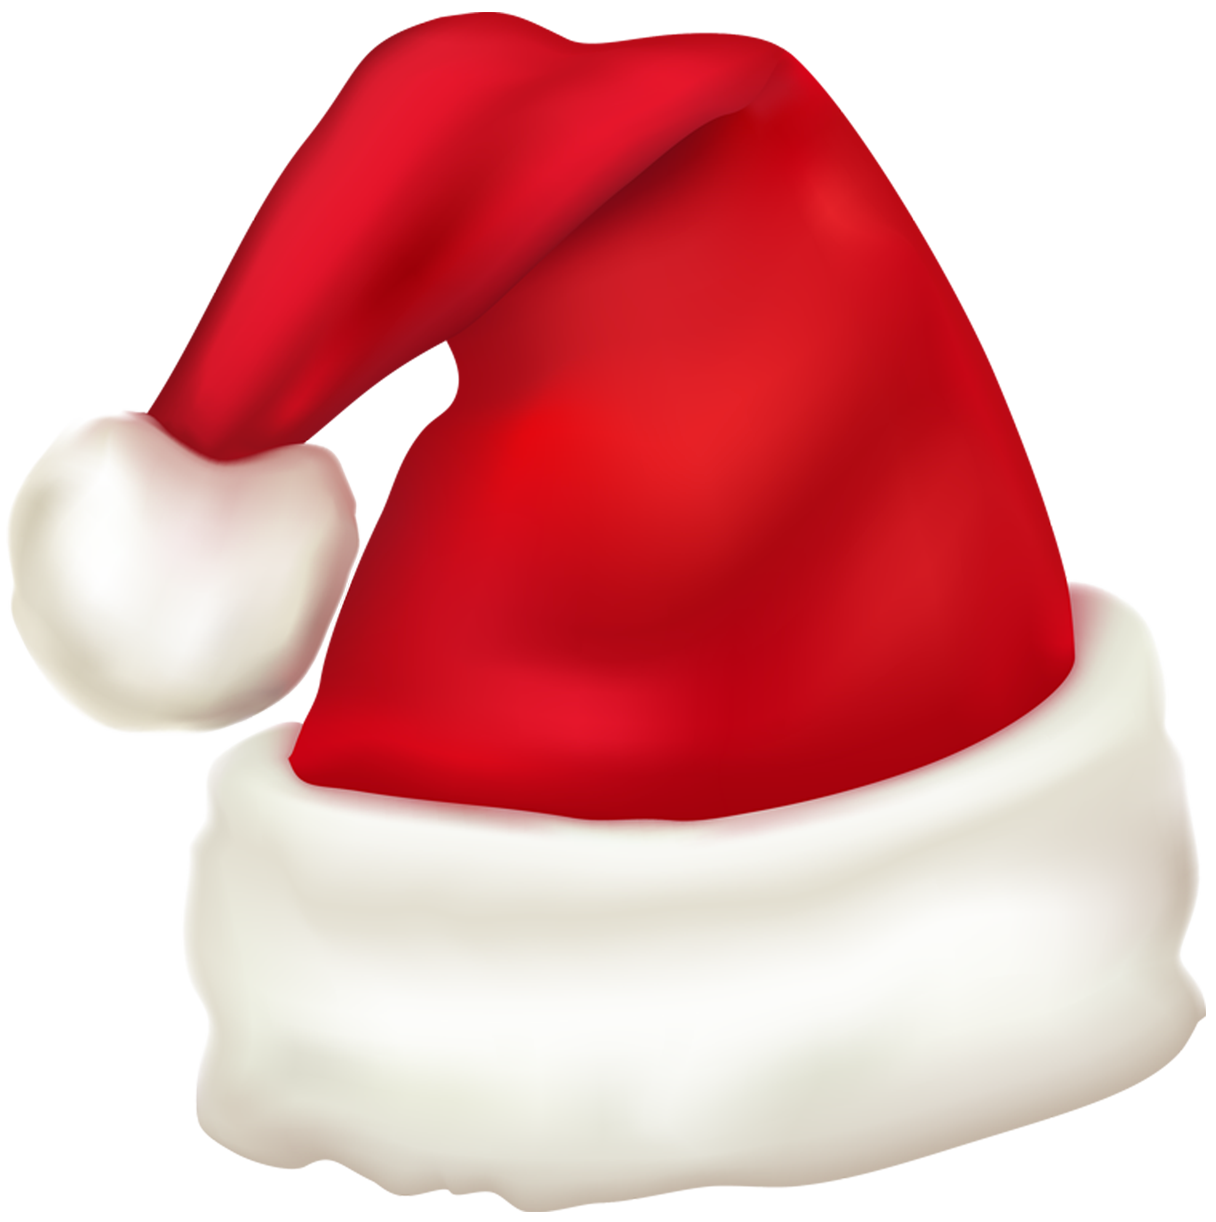 Christmas Hat Transparent.Santa Hat Png Transparent Background Christmas